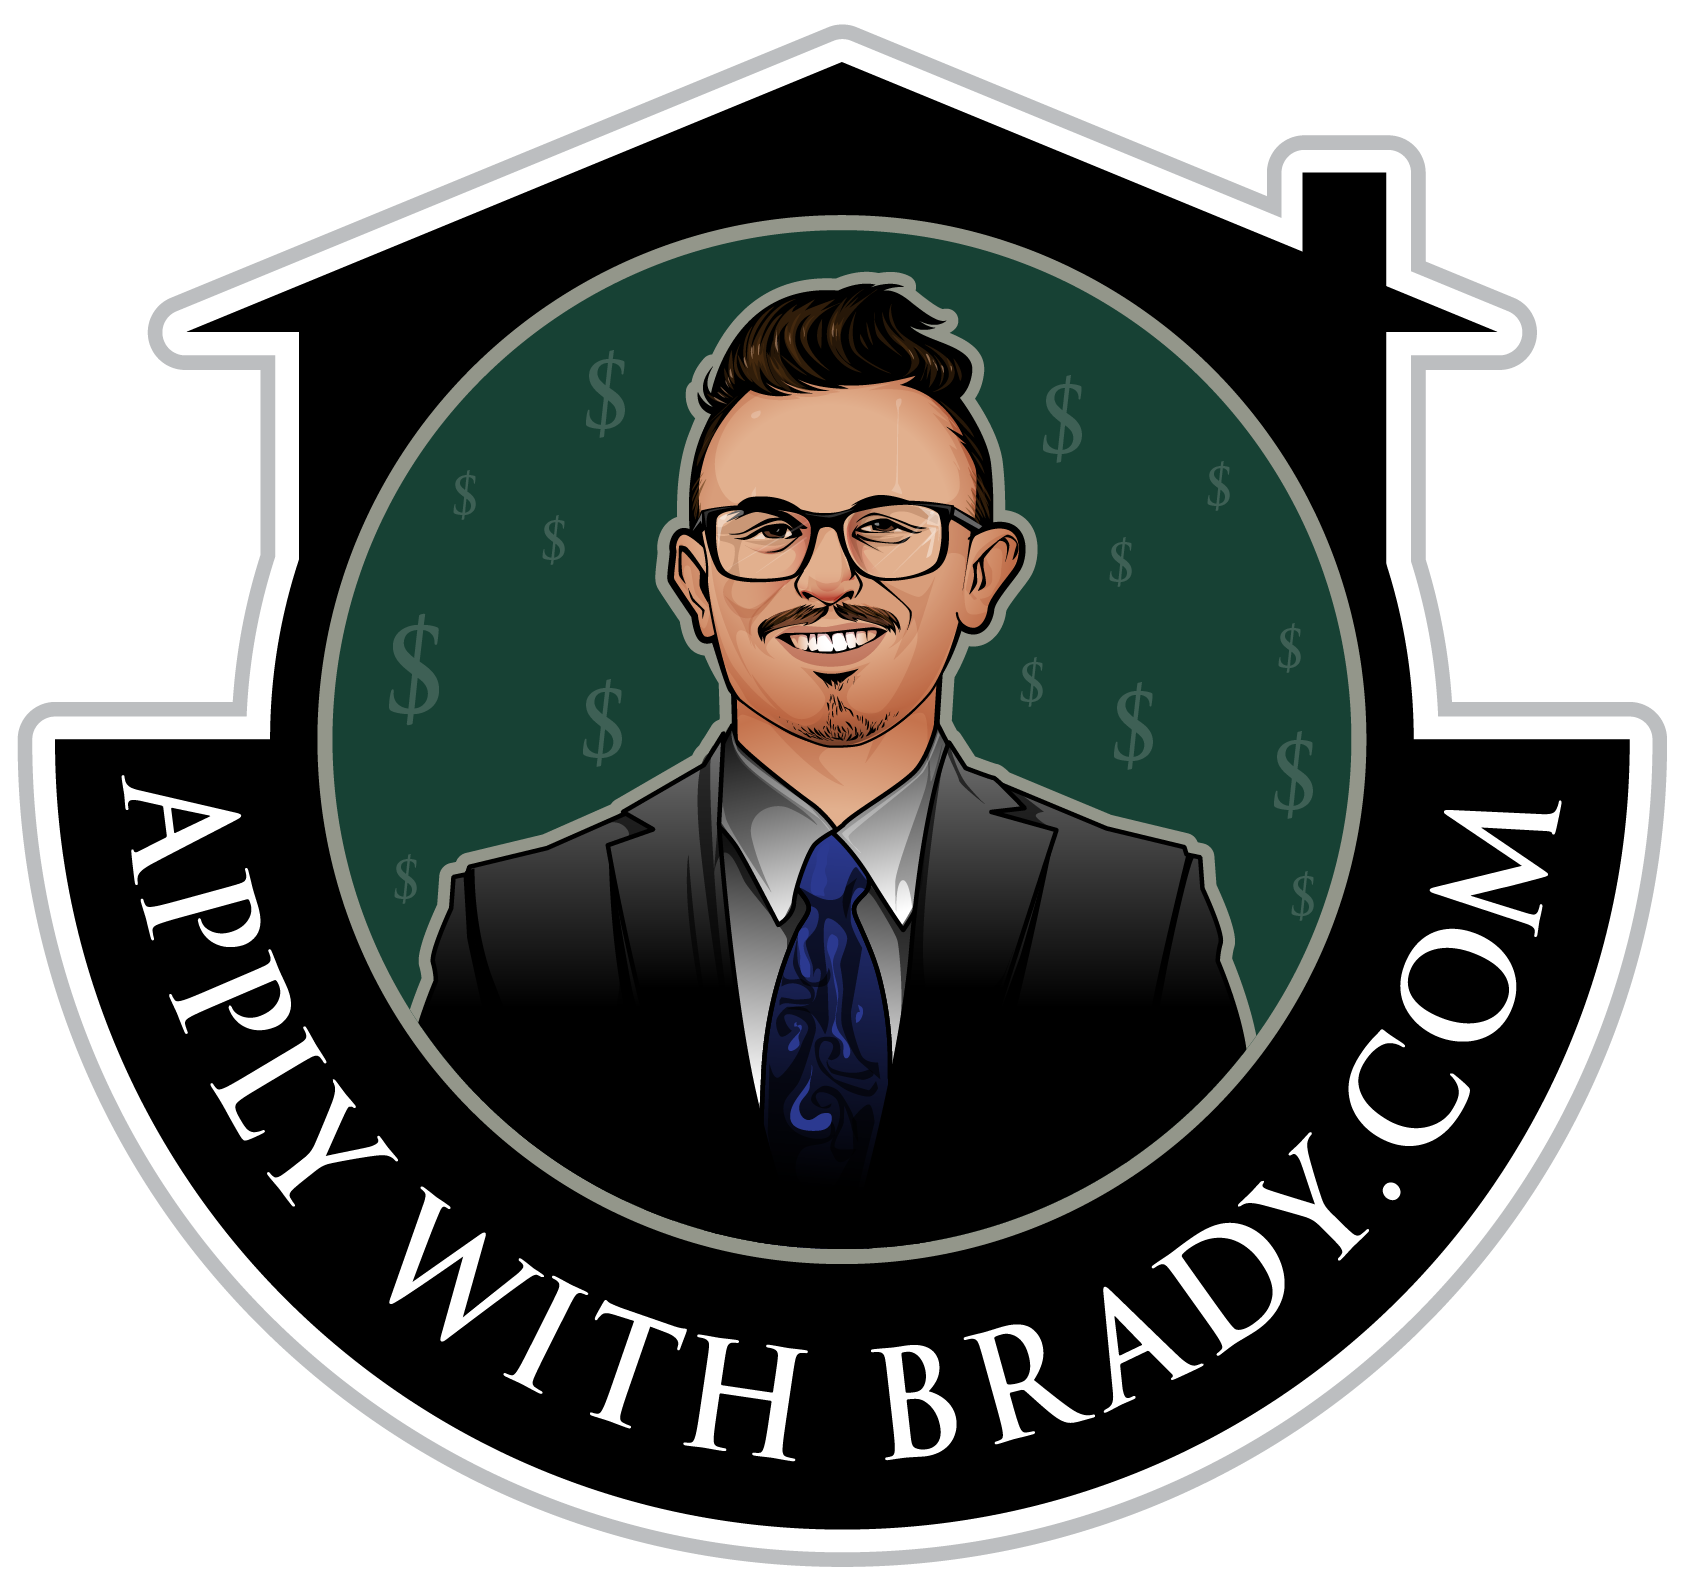 Apply for a mortgage with Brady William Bell.